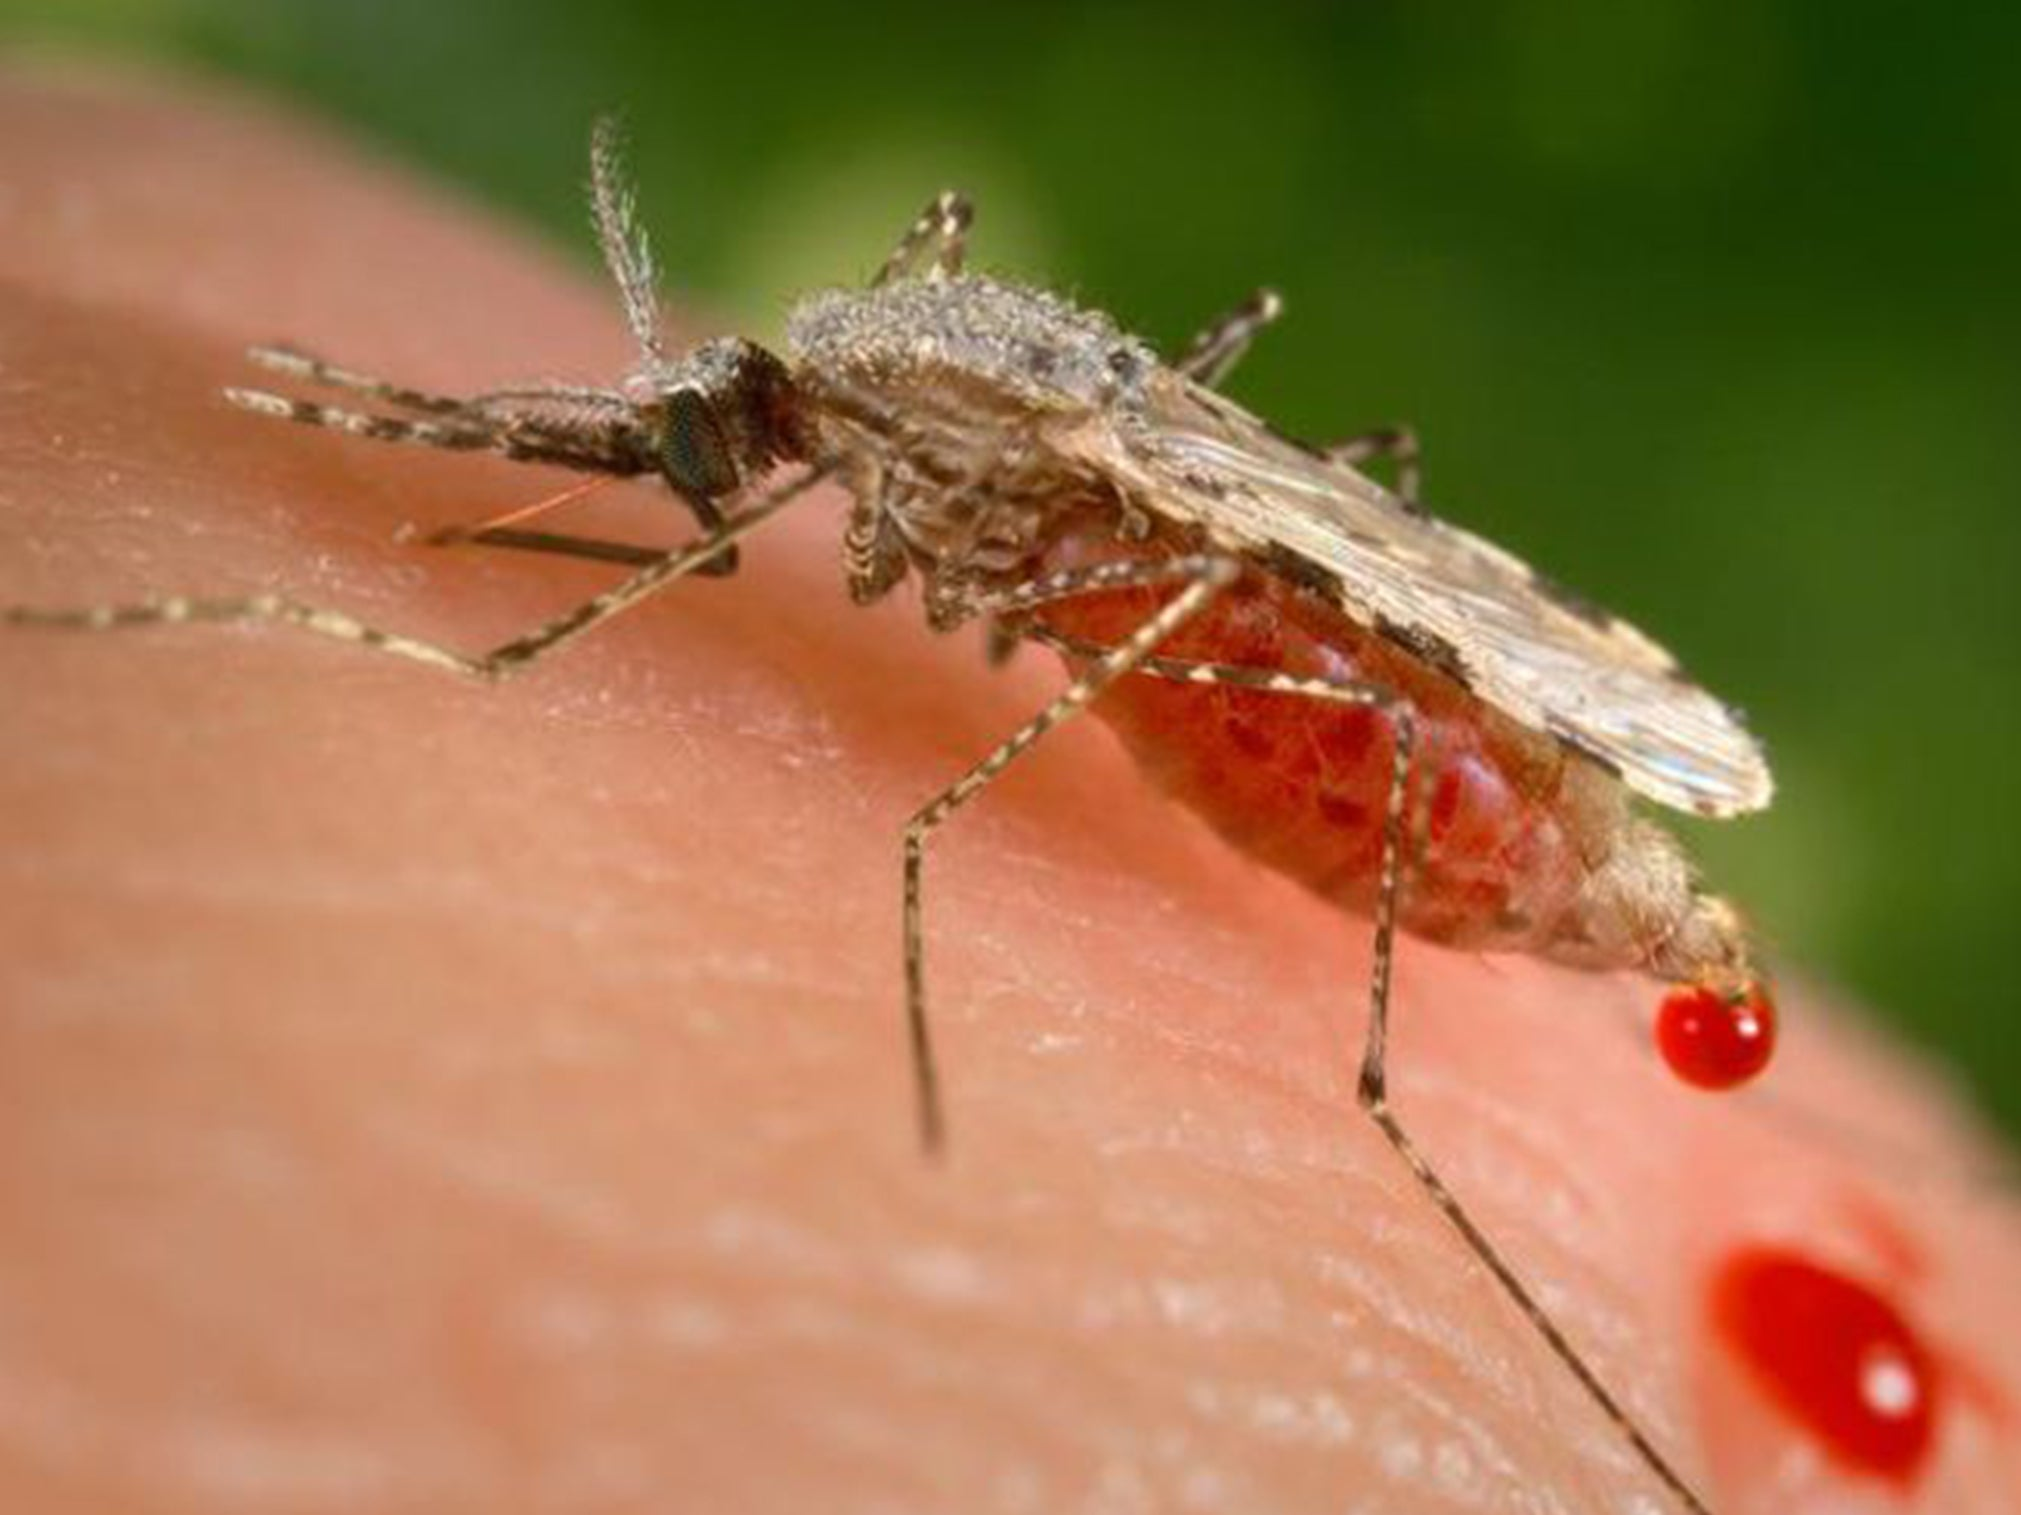 Toothpaste ingredient may help curb drug-resistant malaria, finds AI-powered robot